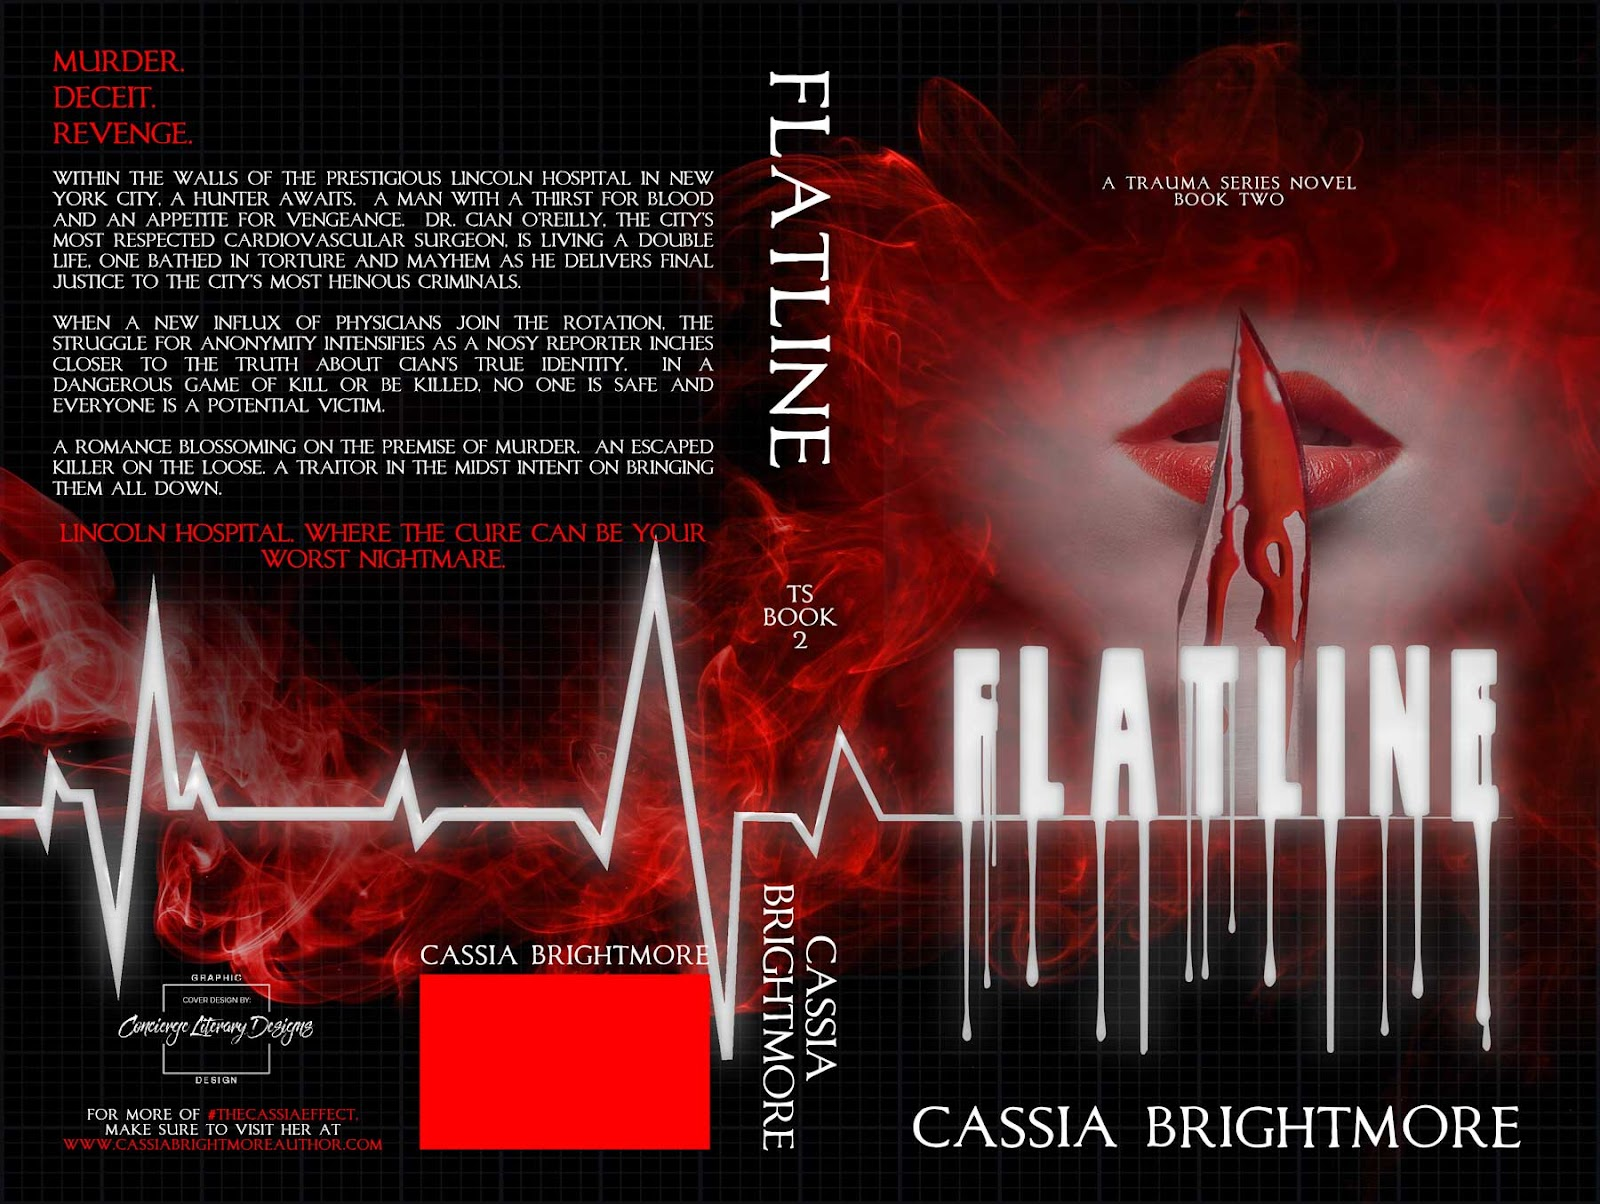 FLATLINE---FULL-WRAP.jpg